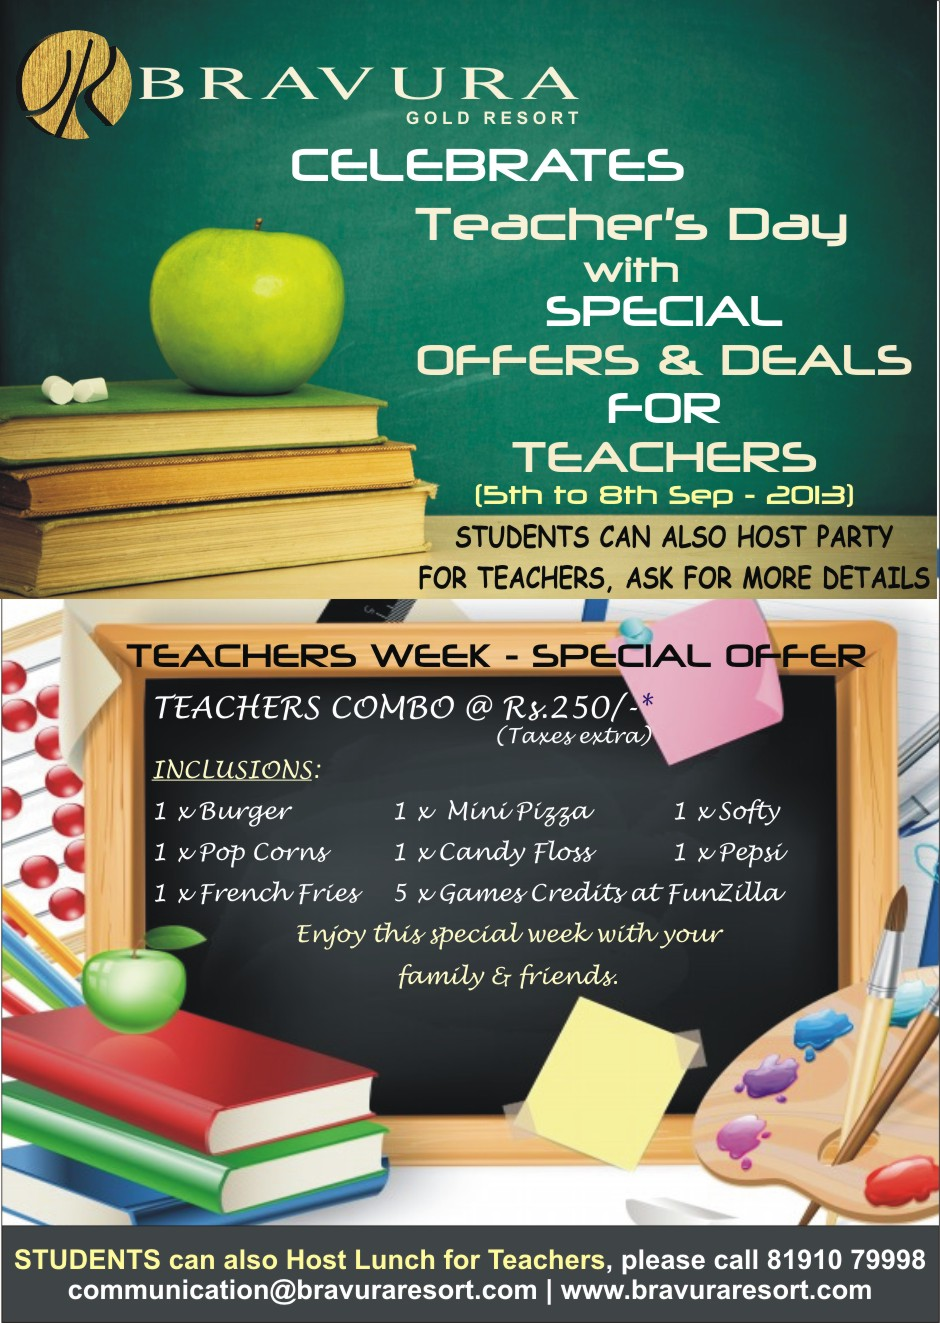 Bravura Gold Resort 5 Star Luxury Hotel And Resorts Teachers Day Teachherpleaseblogspotcom In This Celebration We Are Offering Many Special Offers Deals For More Information Please Call Us On 91 8191079998 Or Email At